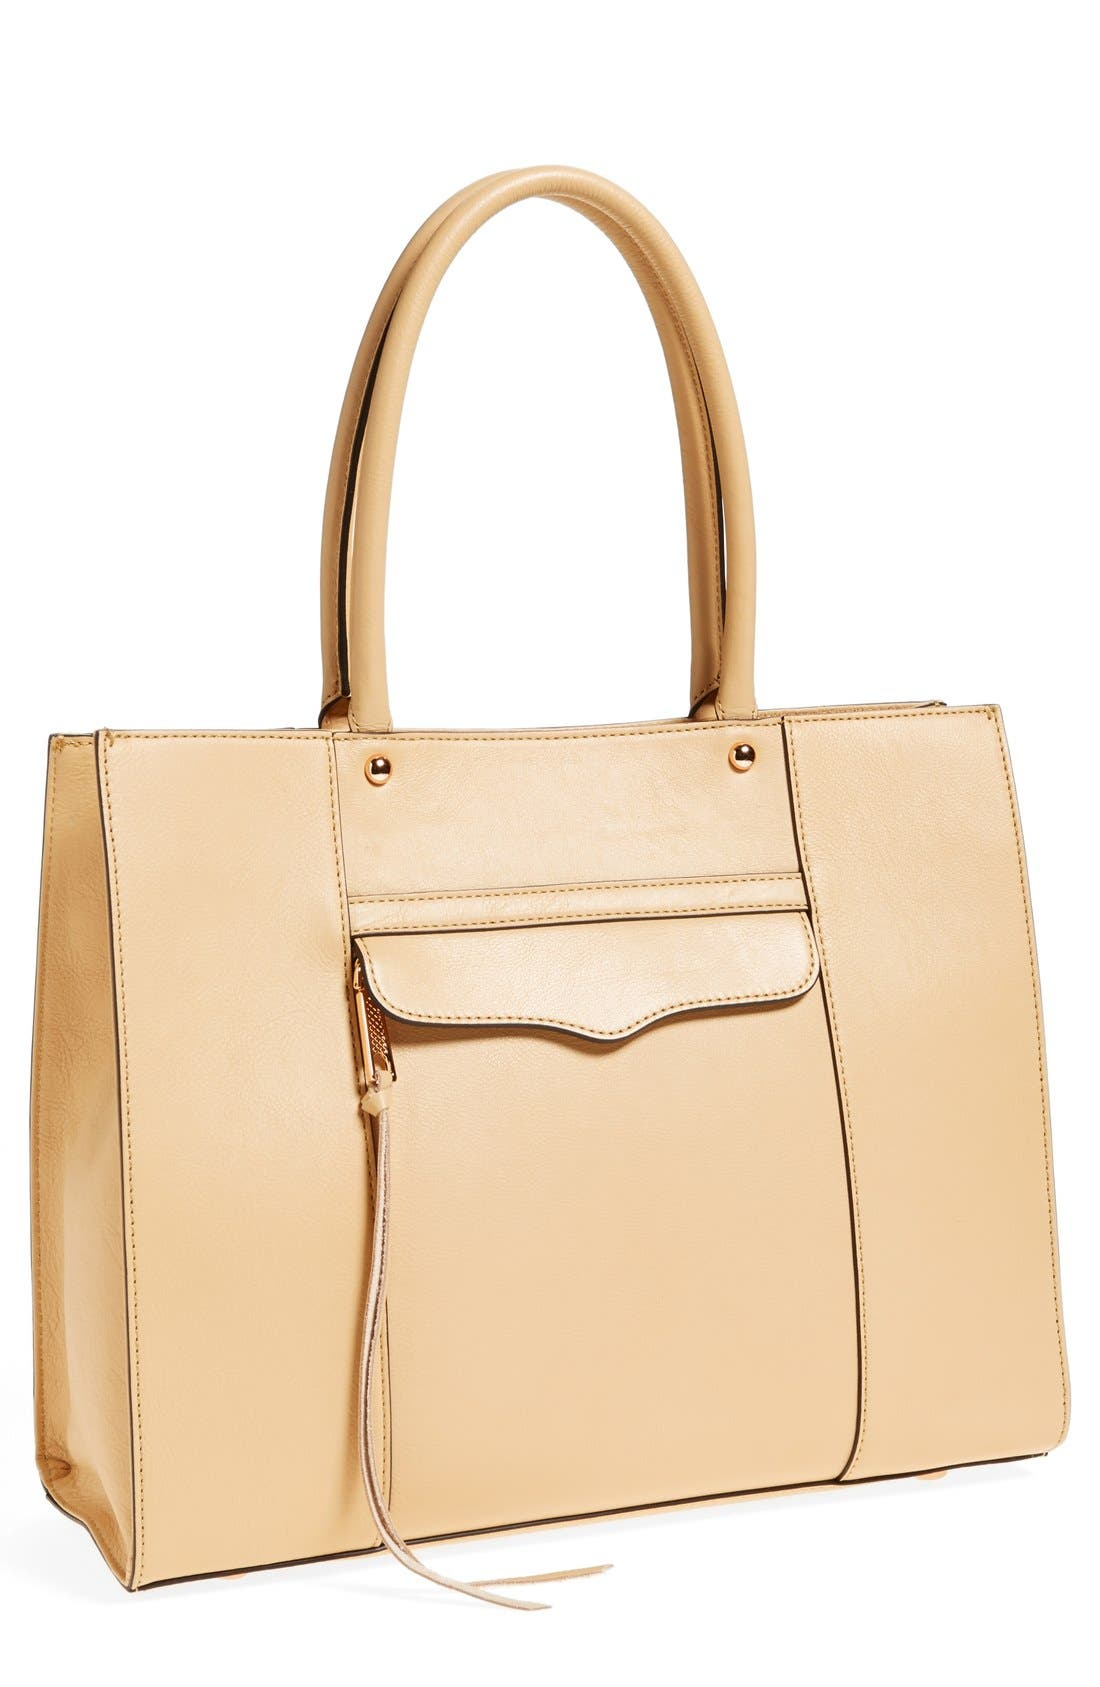 Alternate Image 1 Selected - Rebecca Minkoff 'Medium MAB' Leather Tote